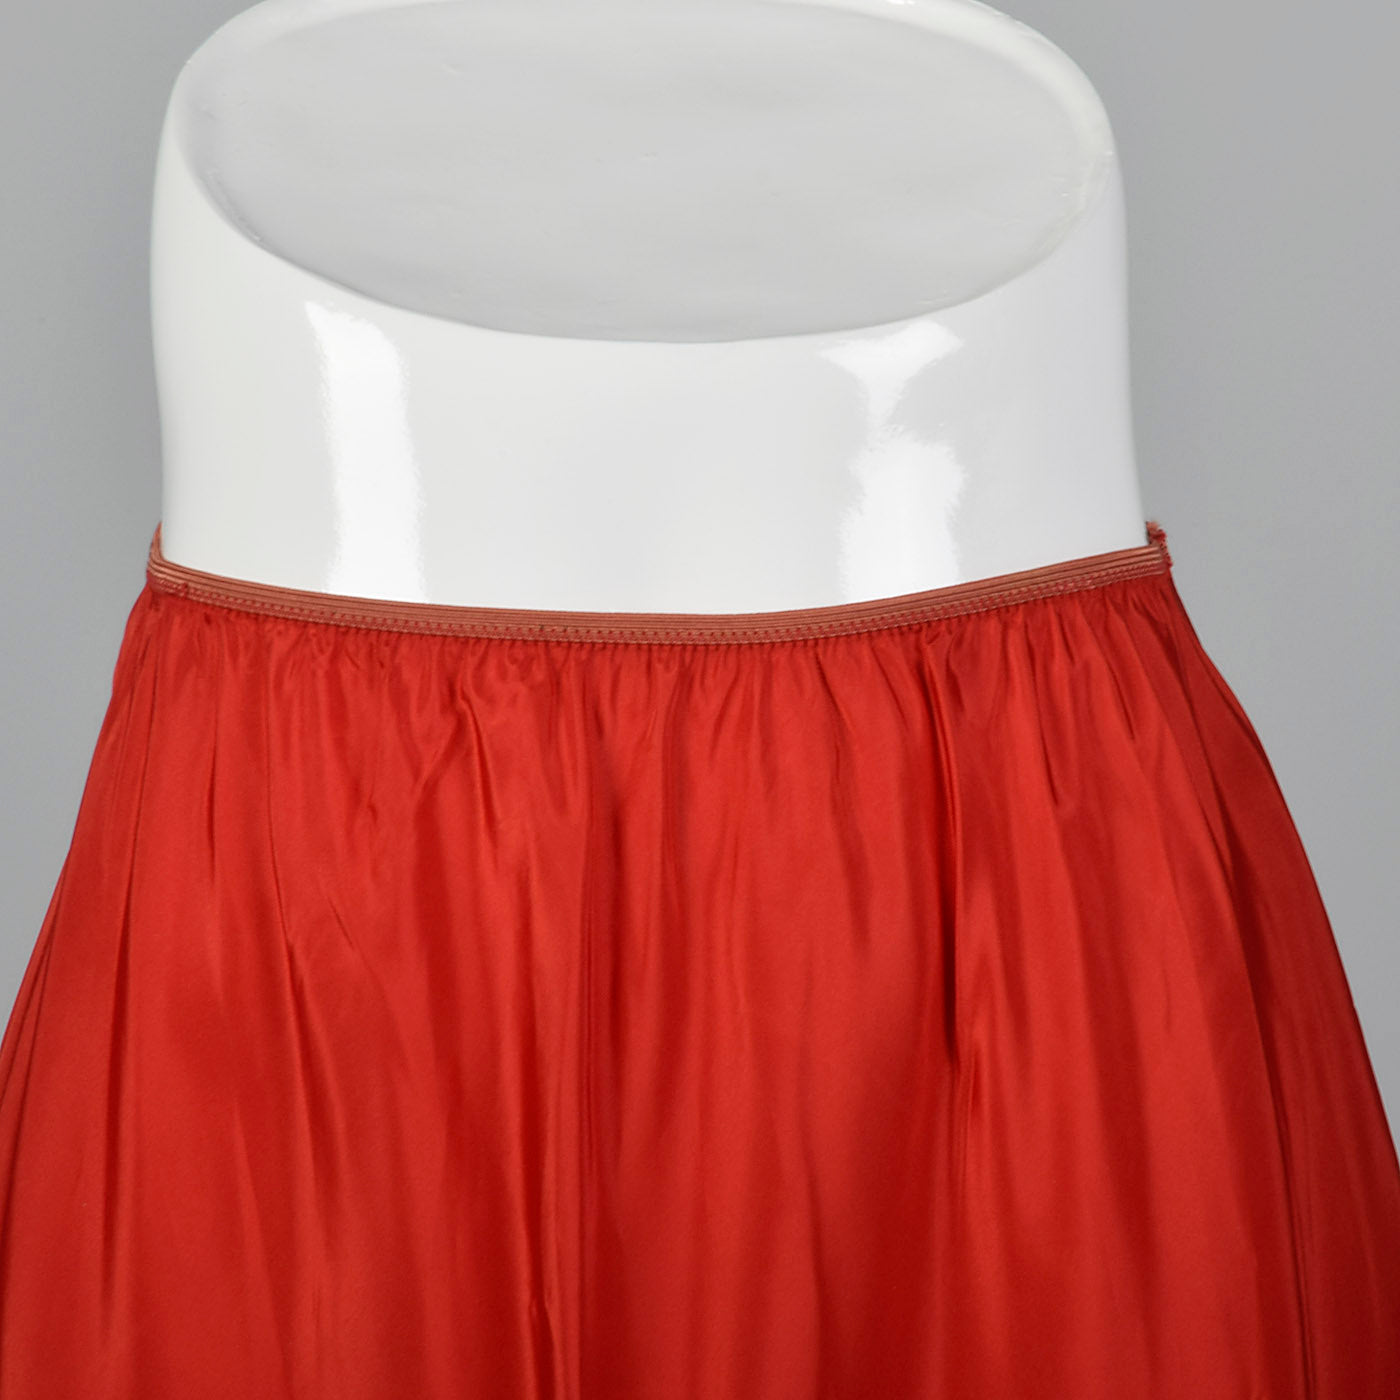 1950s Red Taffeta Half Slip with Crystal Pleats and Polka Dot Ribbon